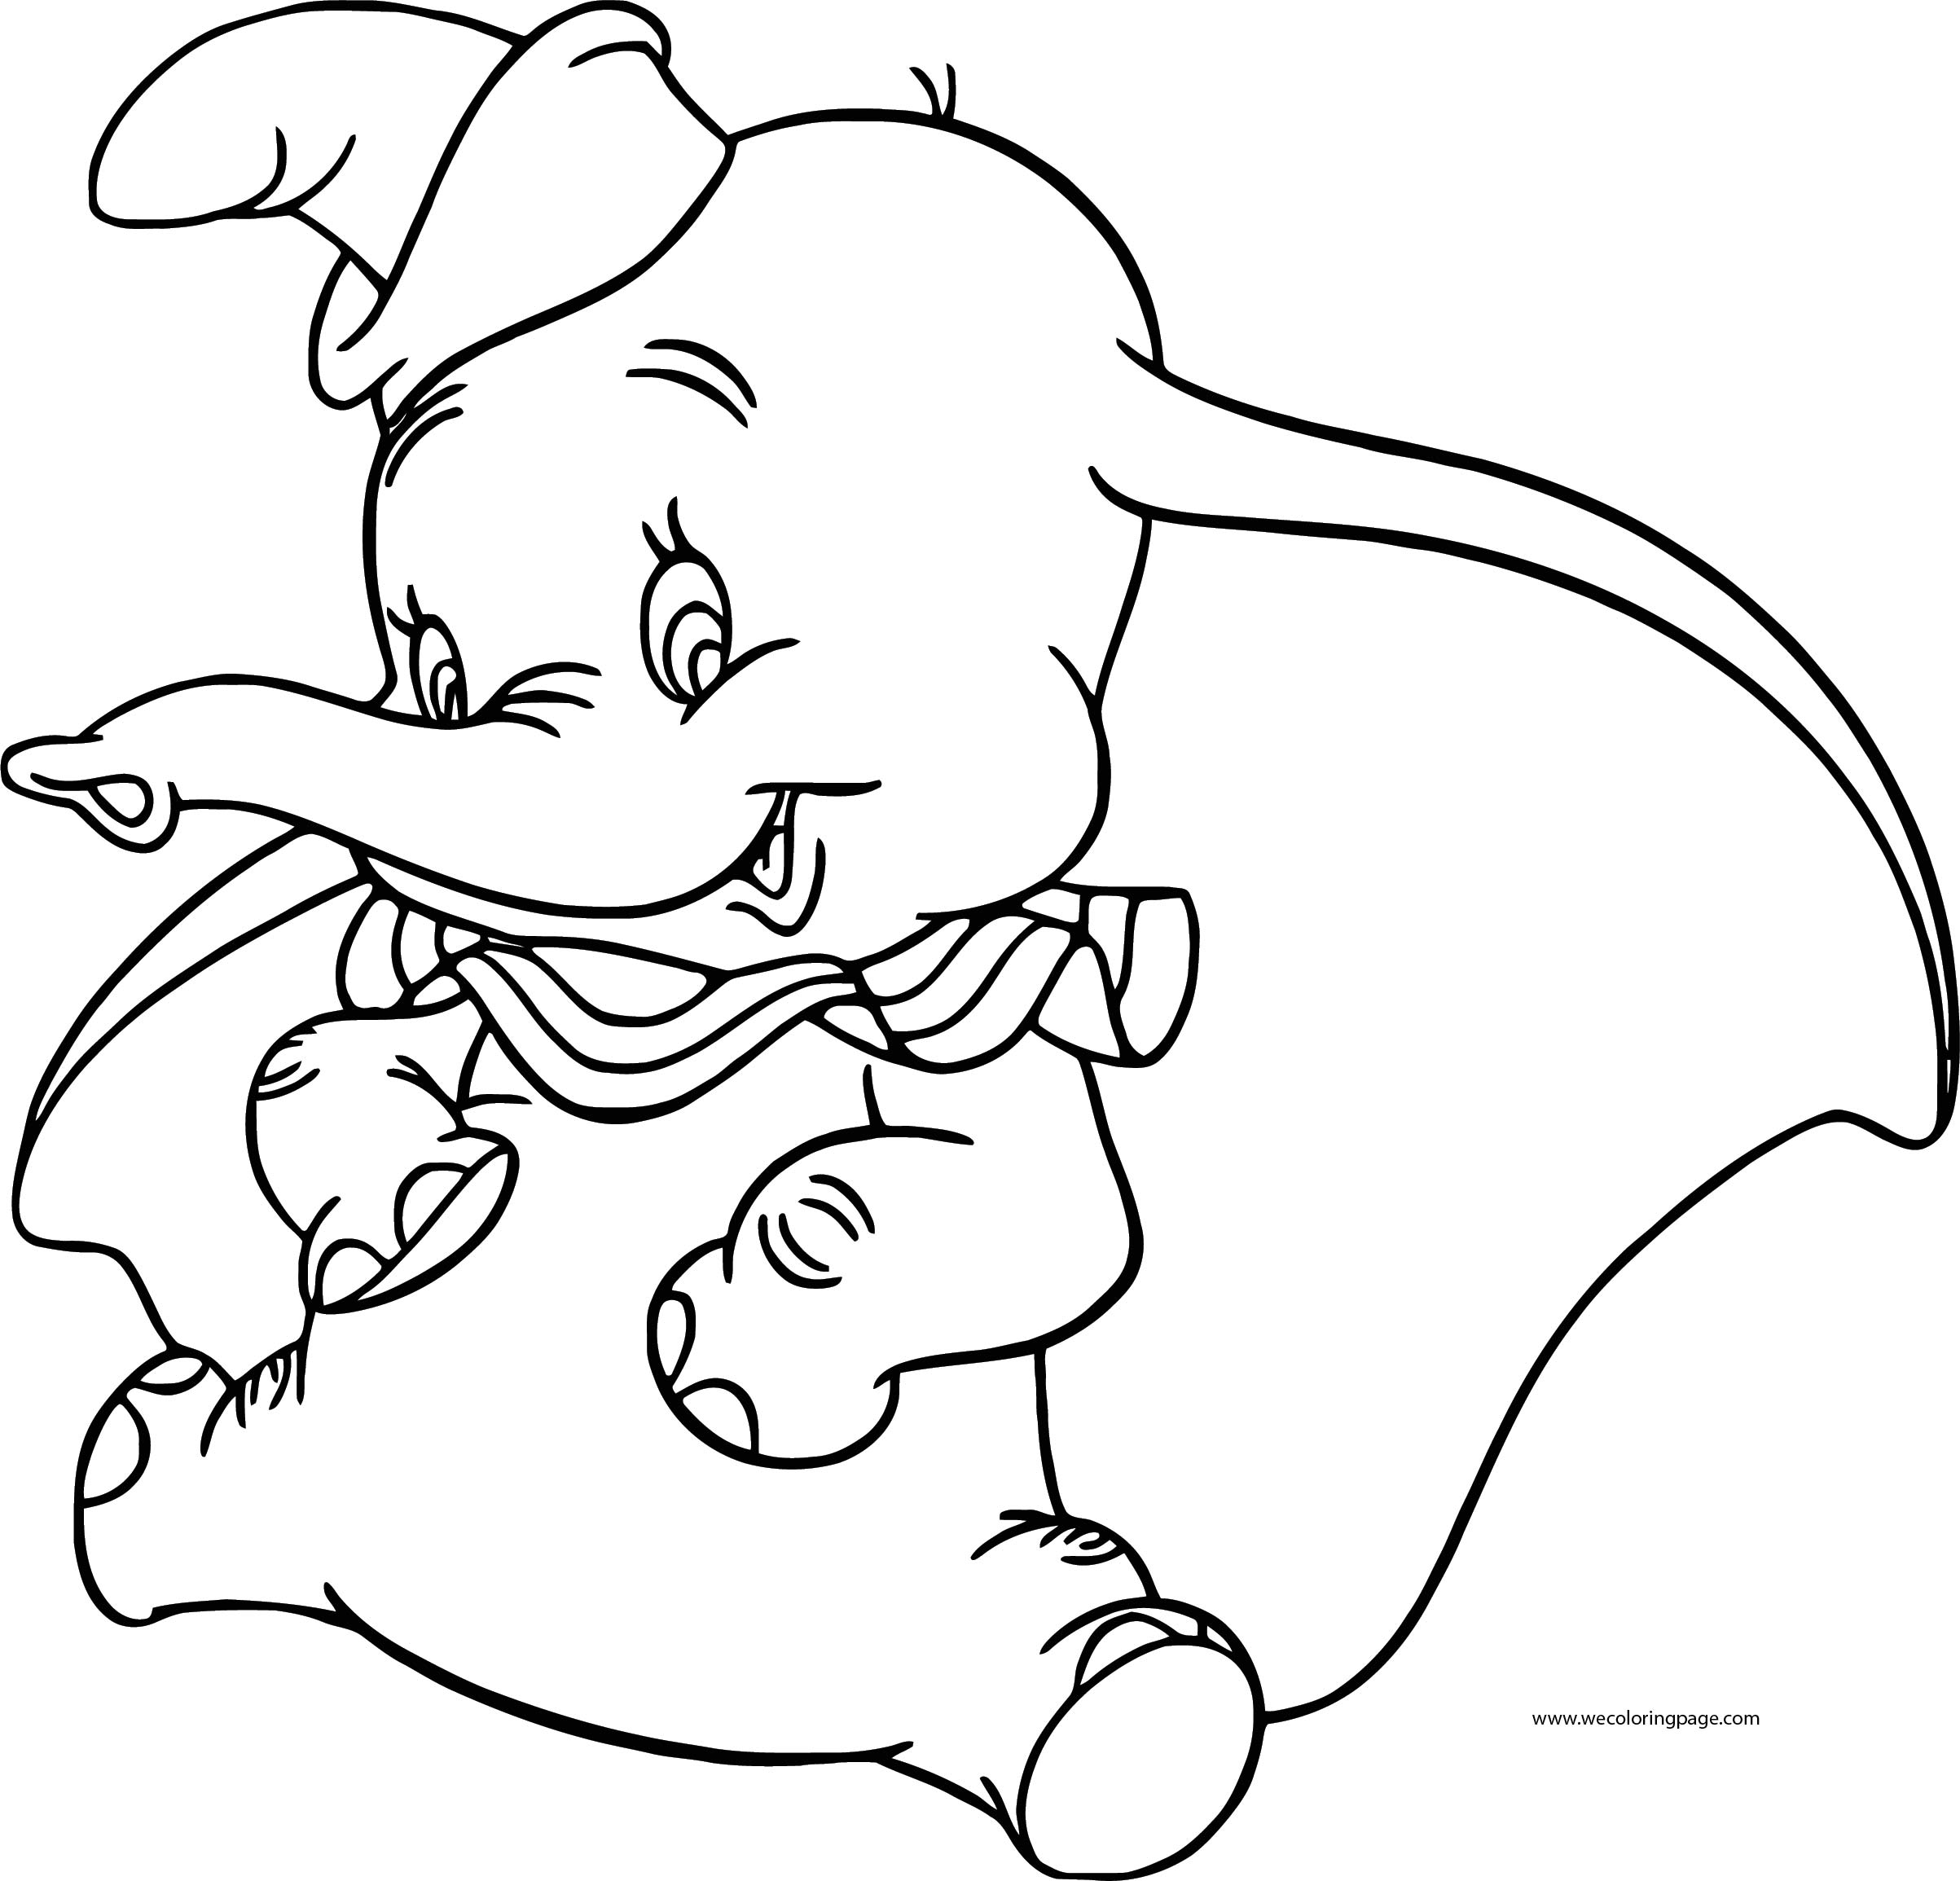 Dumbo Sitting Coloring Pages